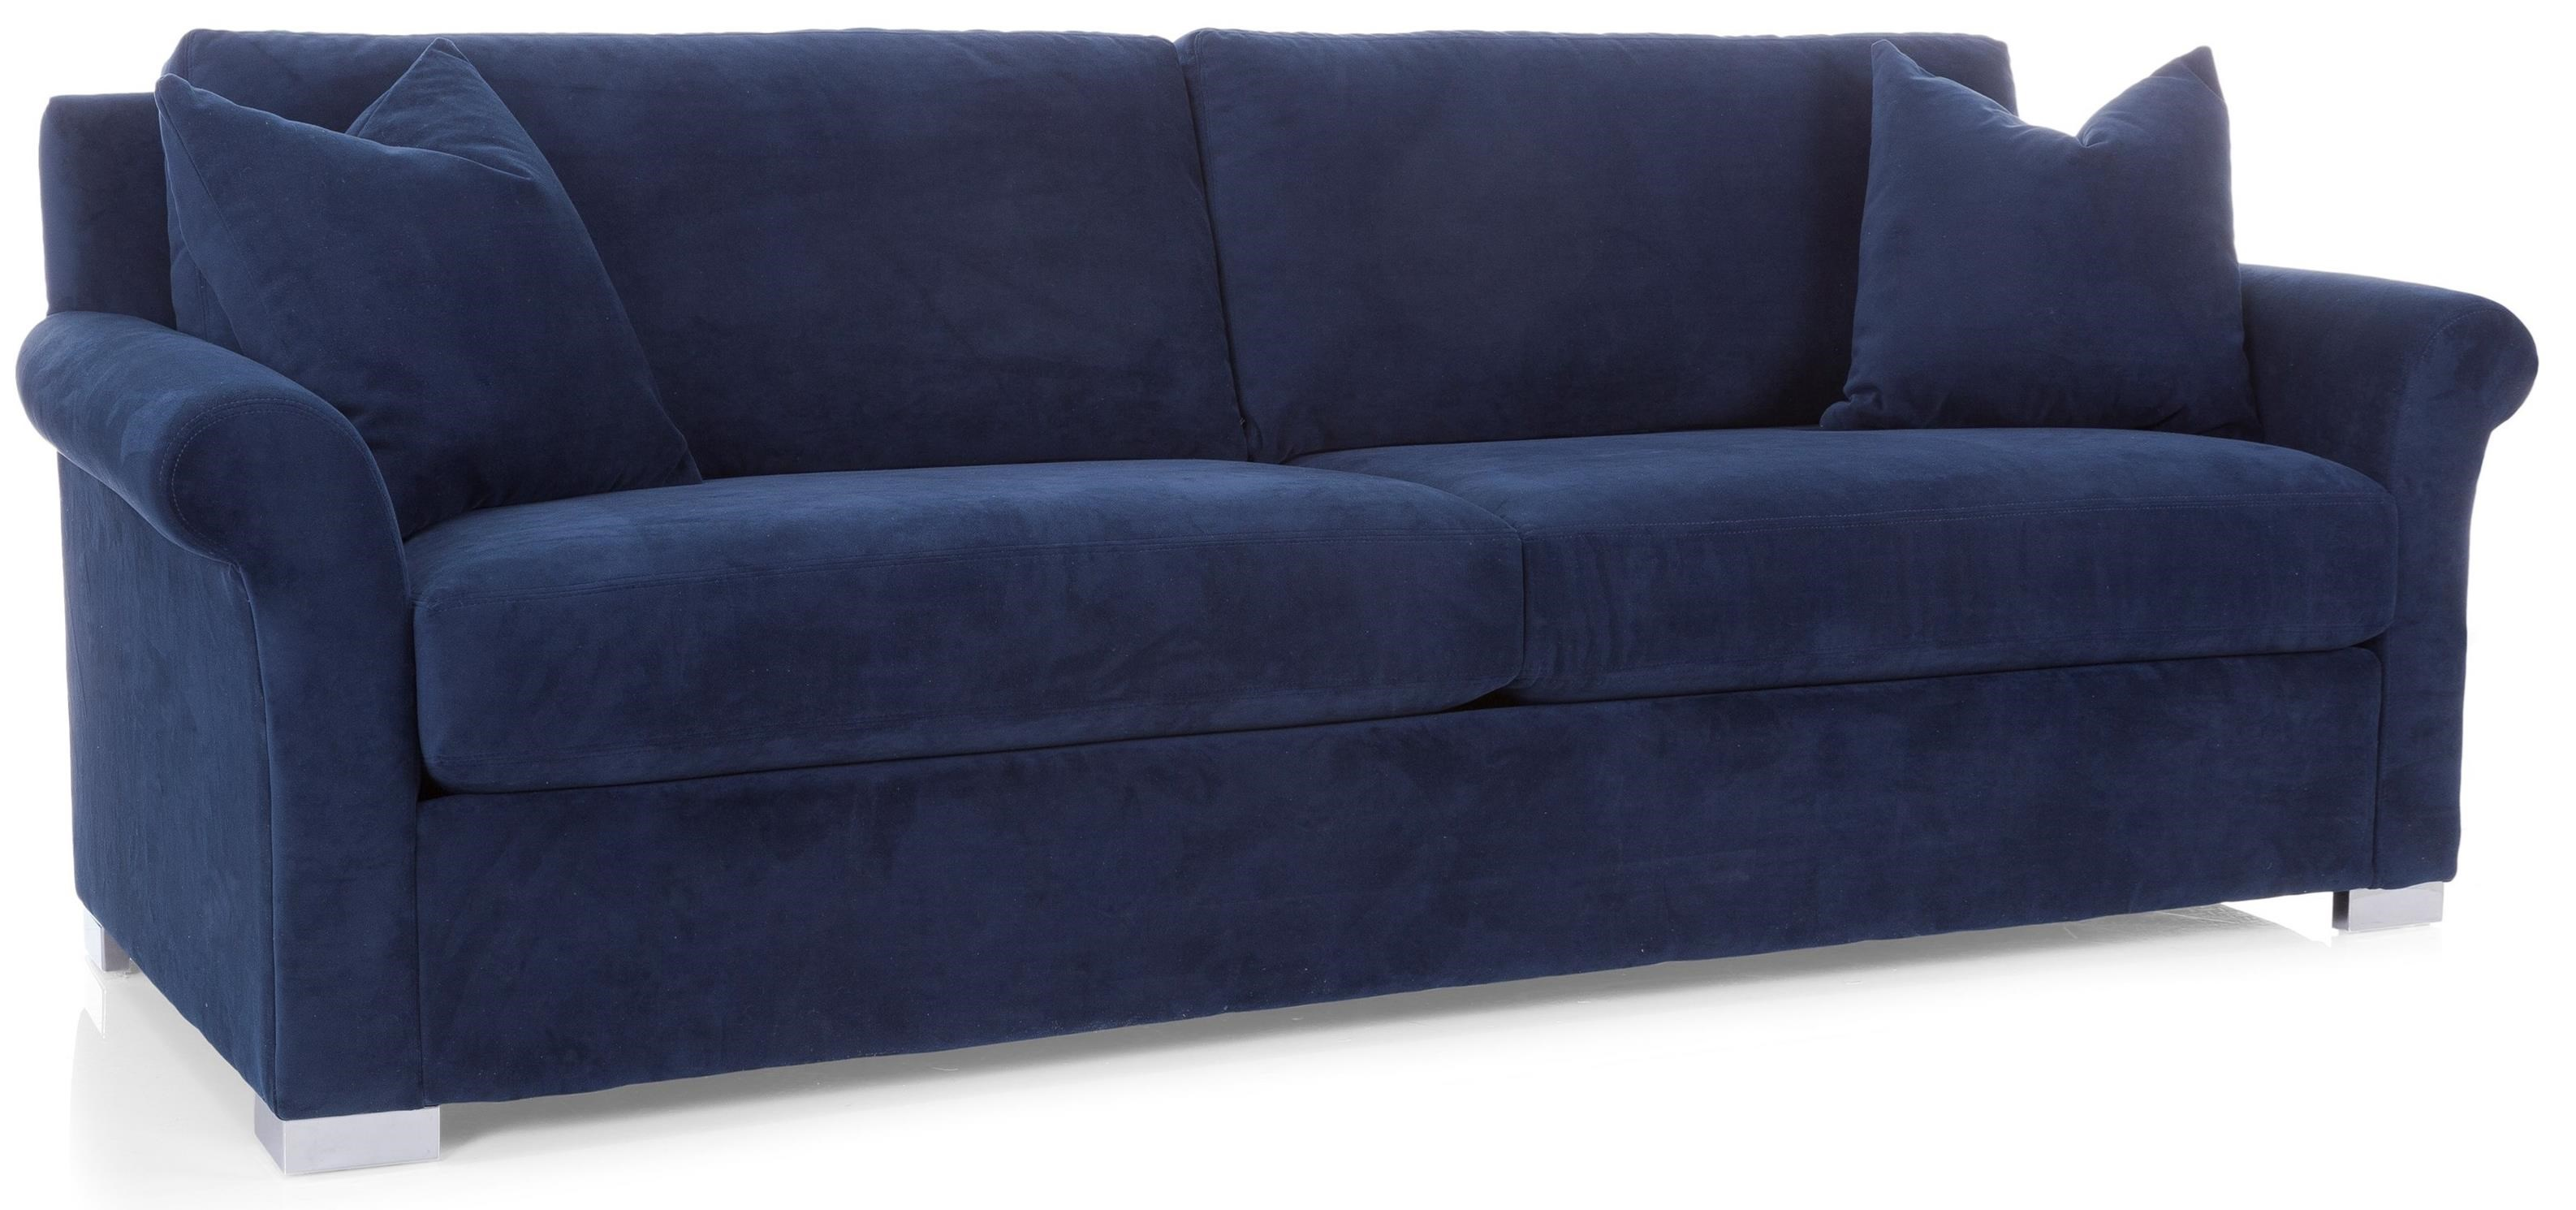 Decor-Rest 7646 Sofa - Item Number: 7646-Sofa-HOT NAV